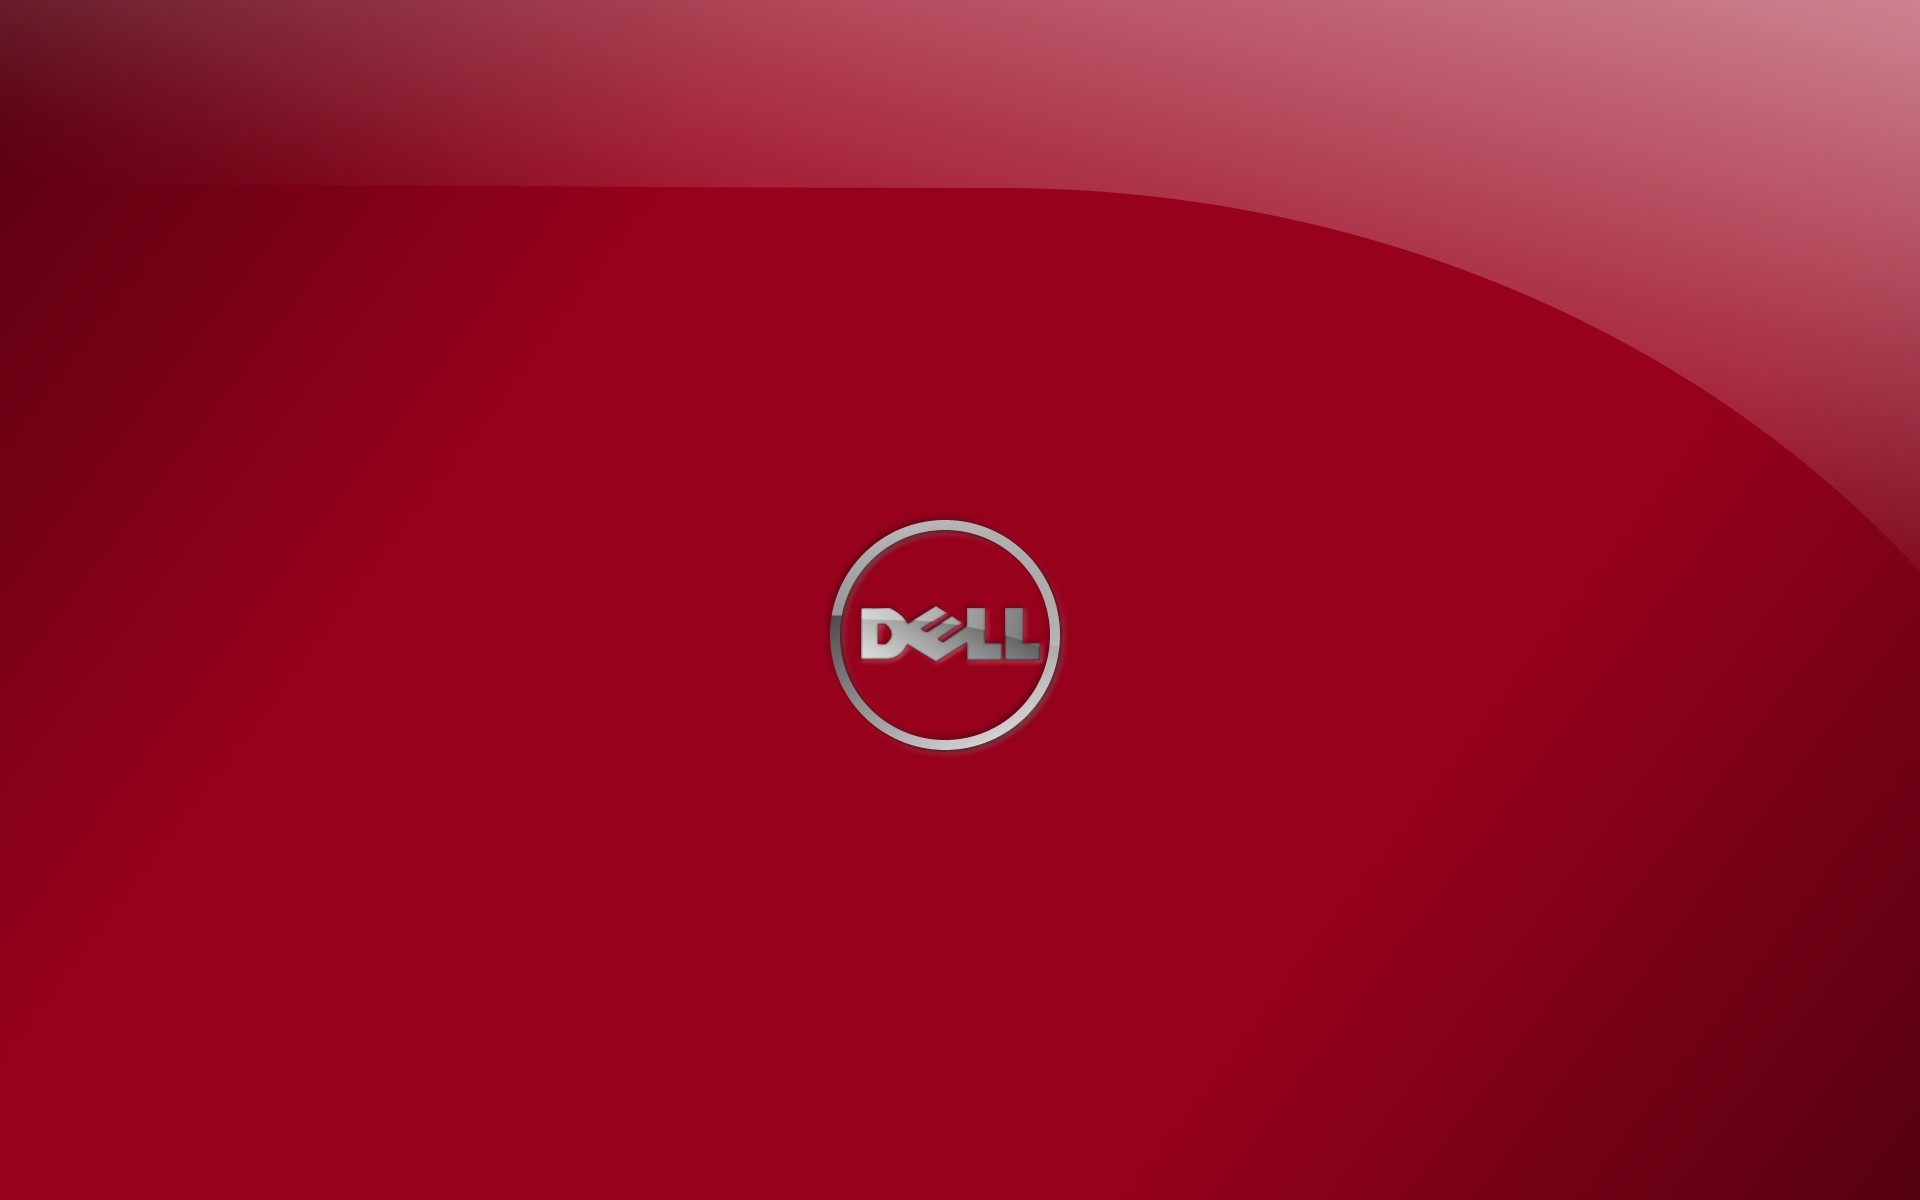 dell-red-color-logo-wallpaper-hd-backgrounds-for-